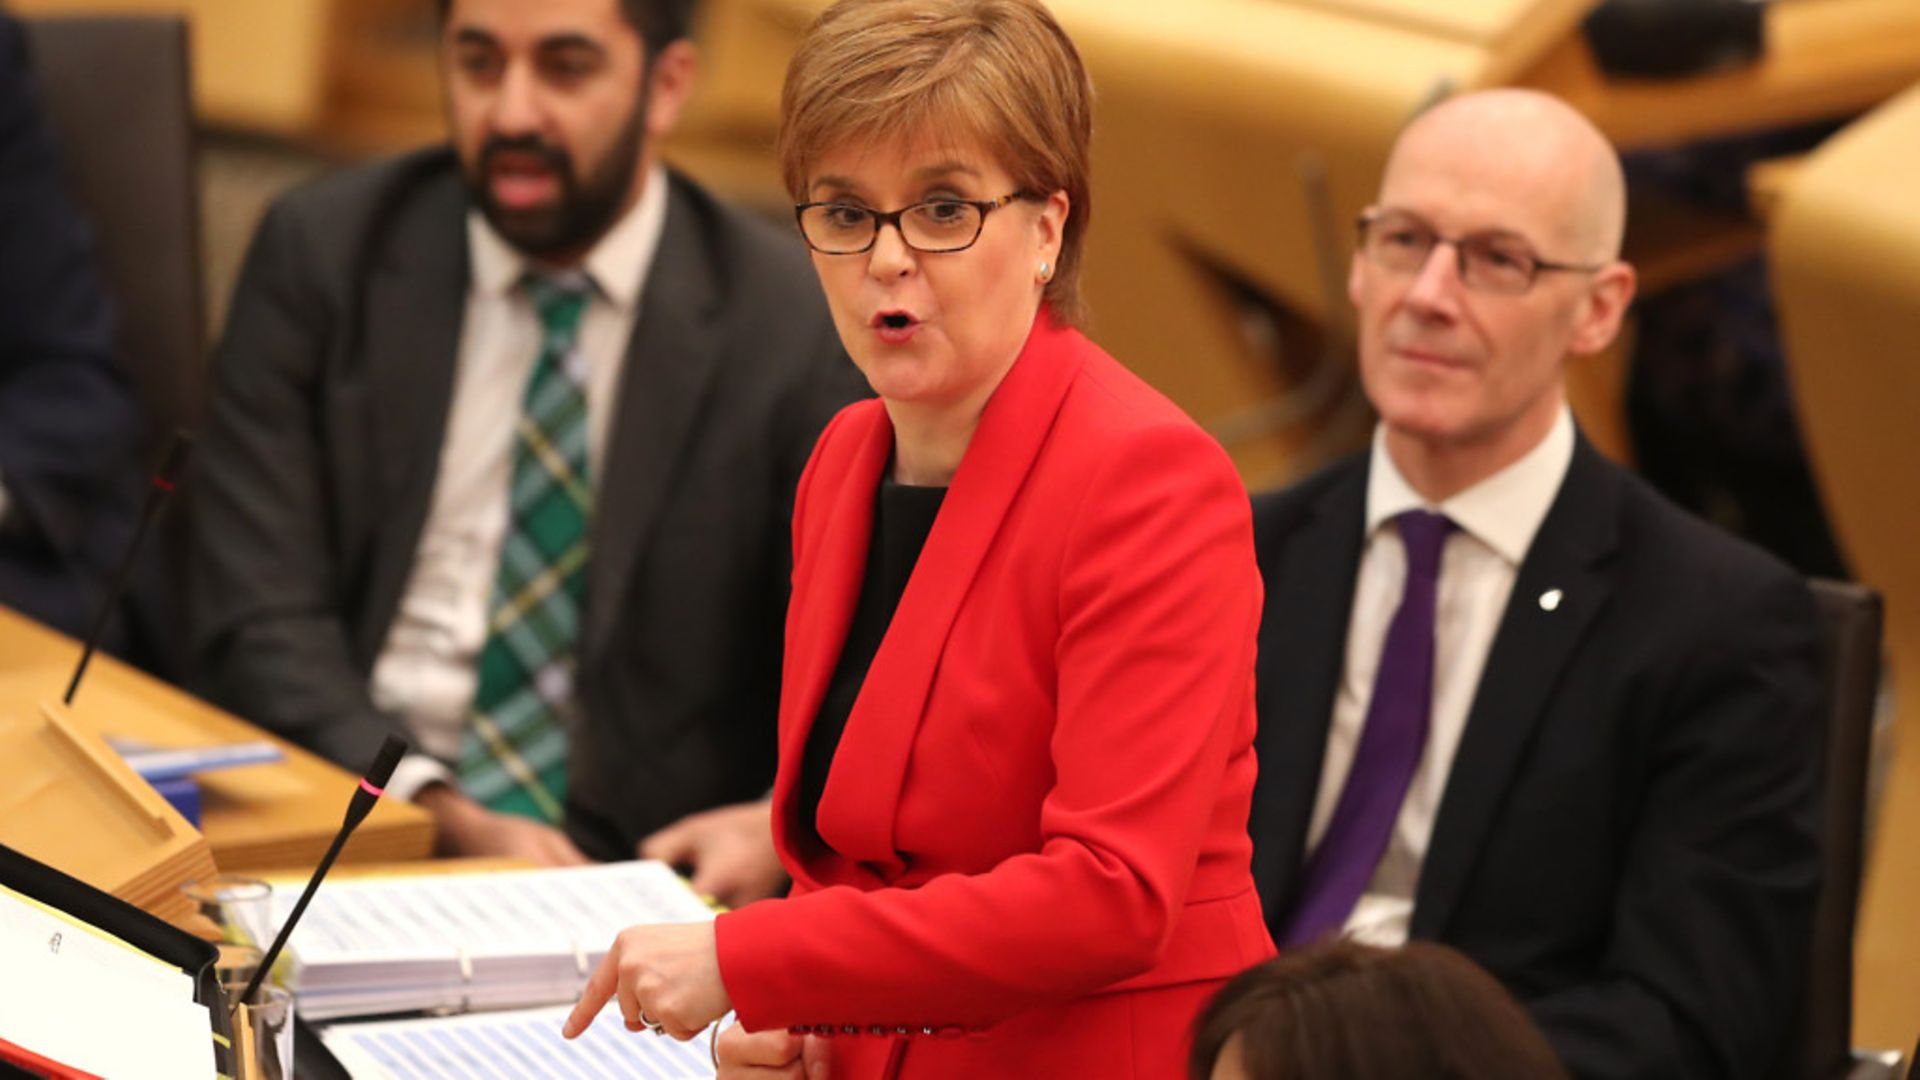 First Minister Nicola Sturgeon during First Minister's Questions at the Scottish Parliament in Edinburgh - Credit: PA Wire/PA Images